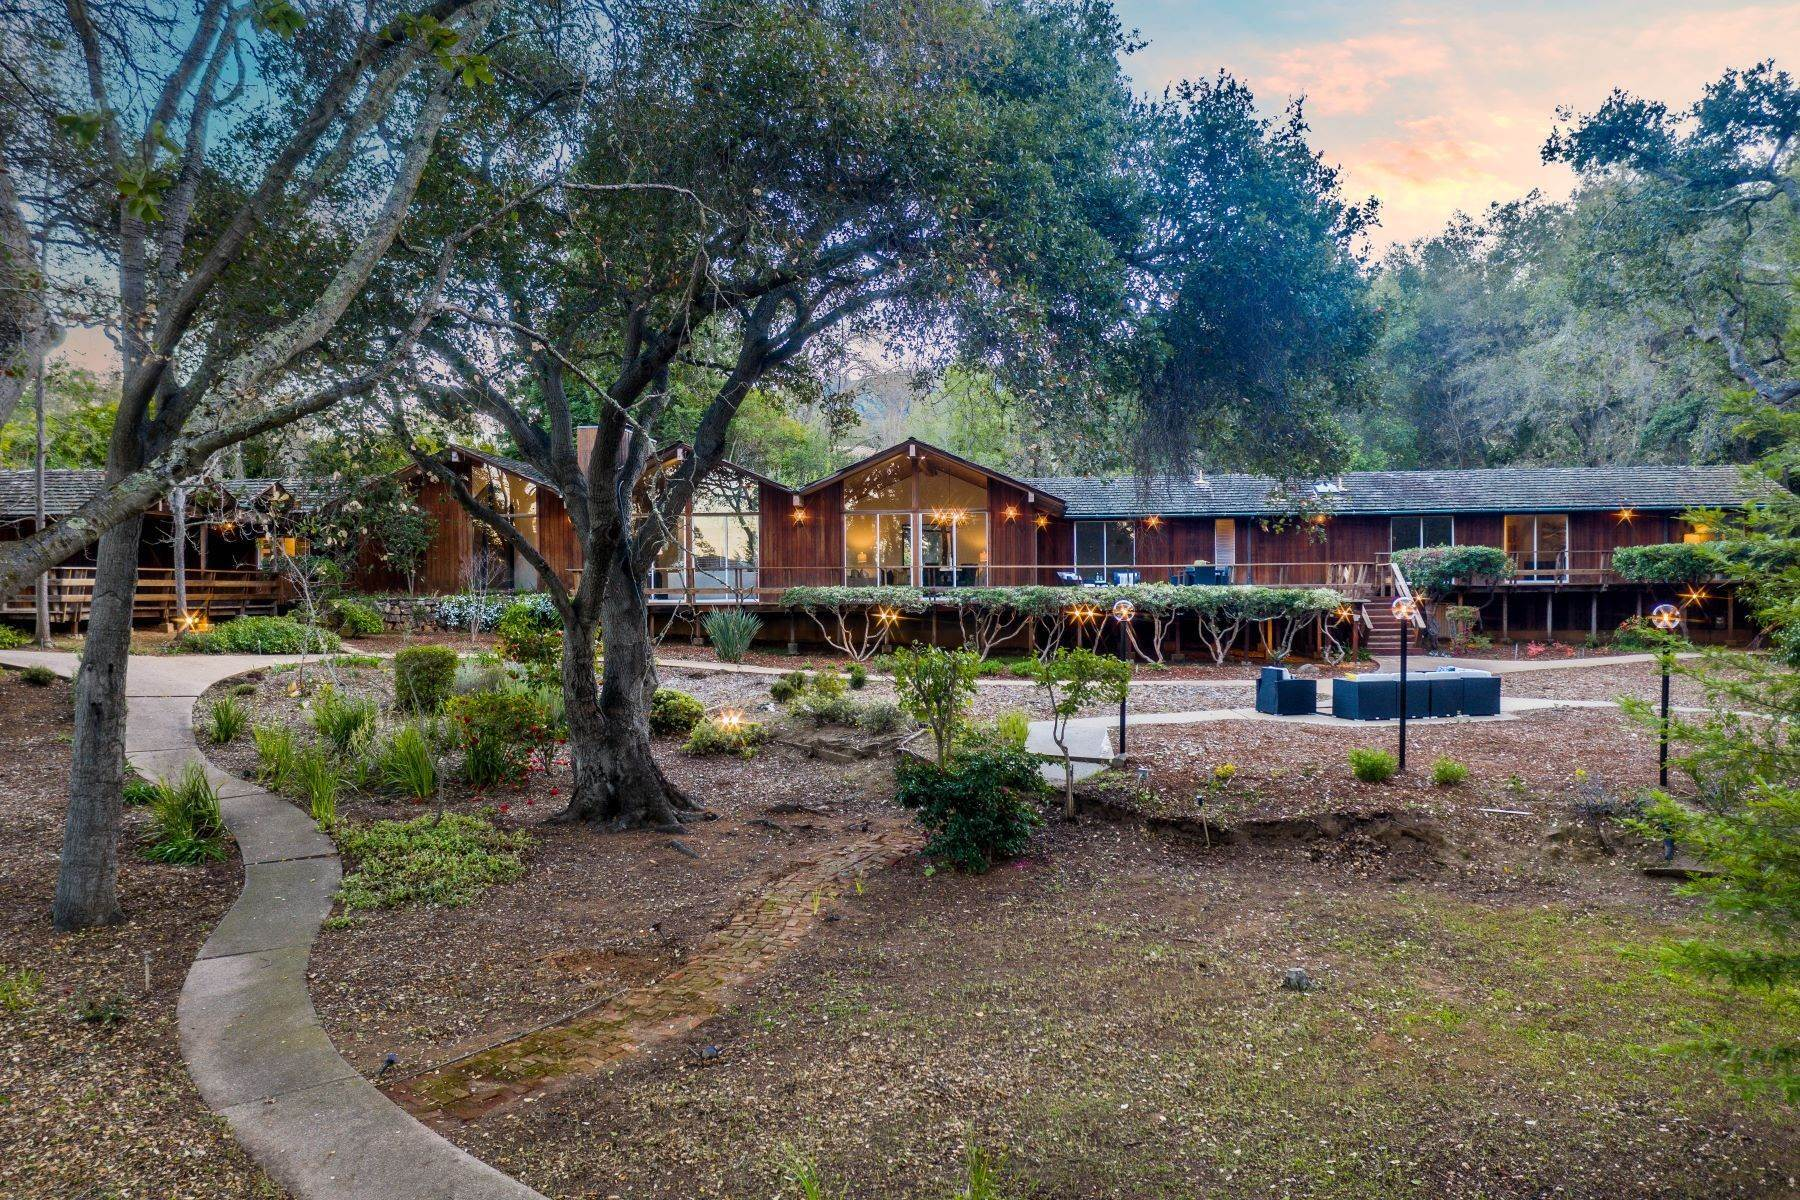 Single Family Homes for Sale at Mid-Century Modern Beauty in Saratoga 14582 Horseshoe Court Saratoga, California 95070 United States